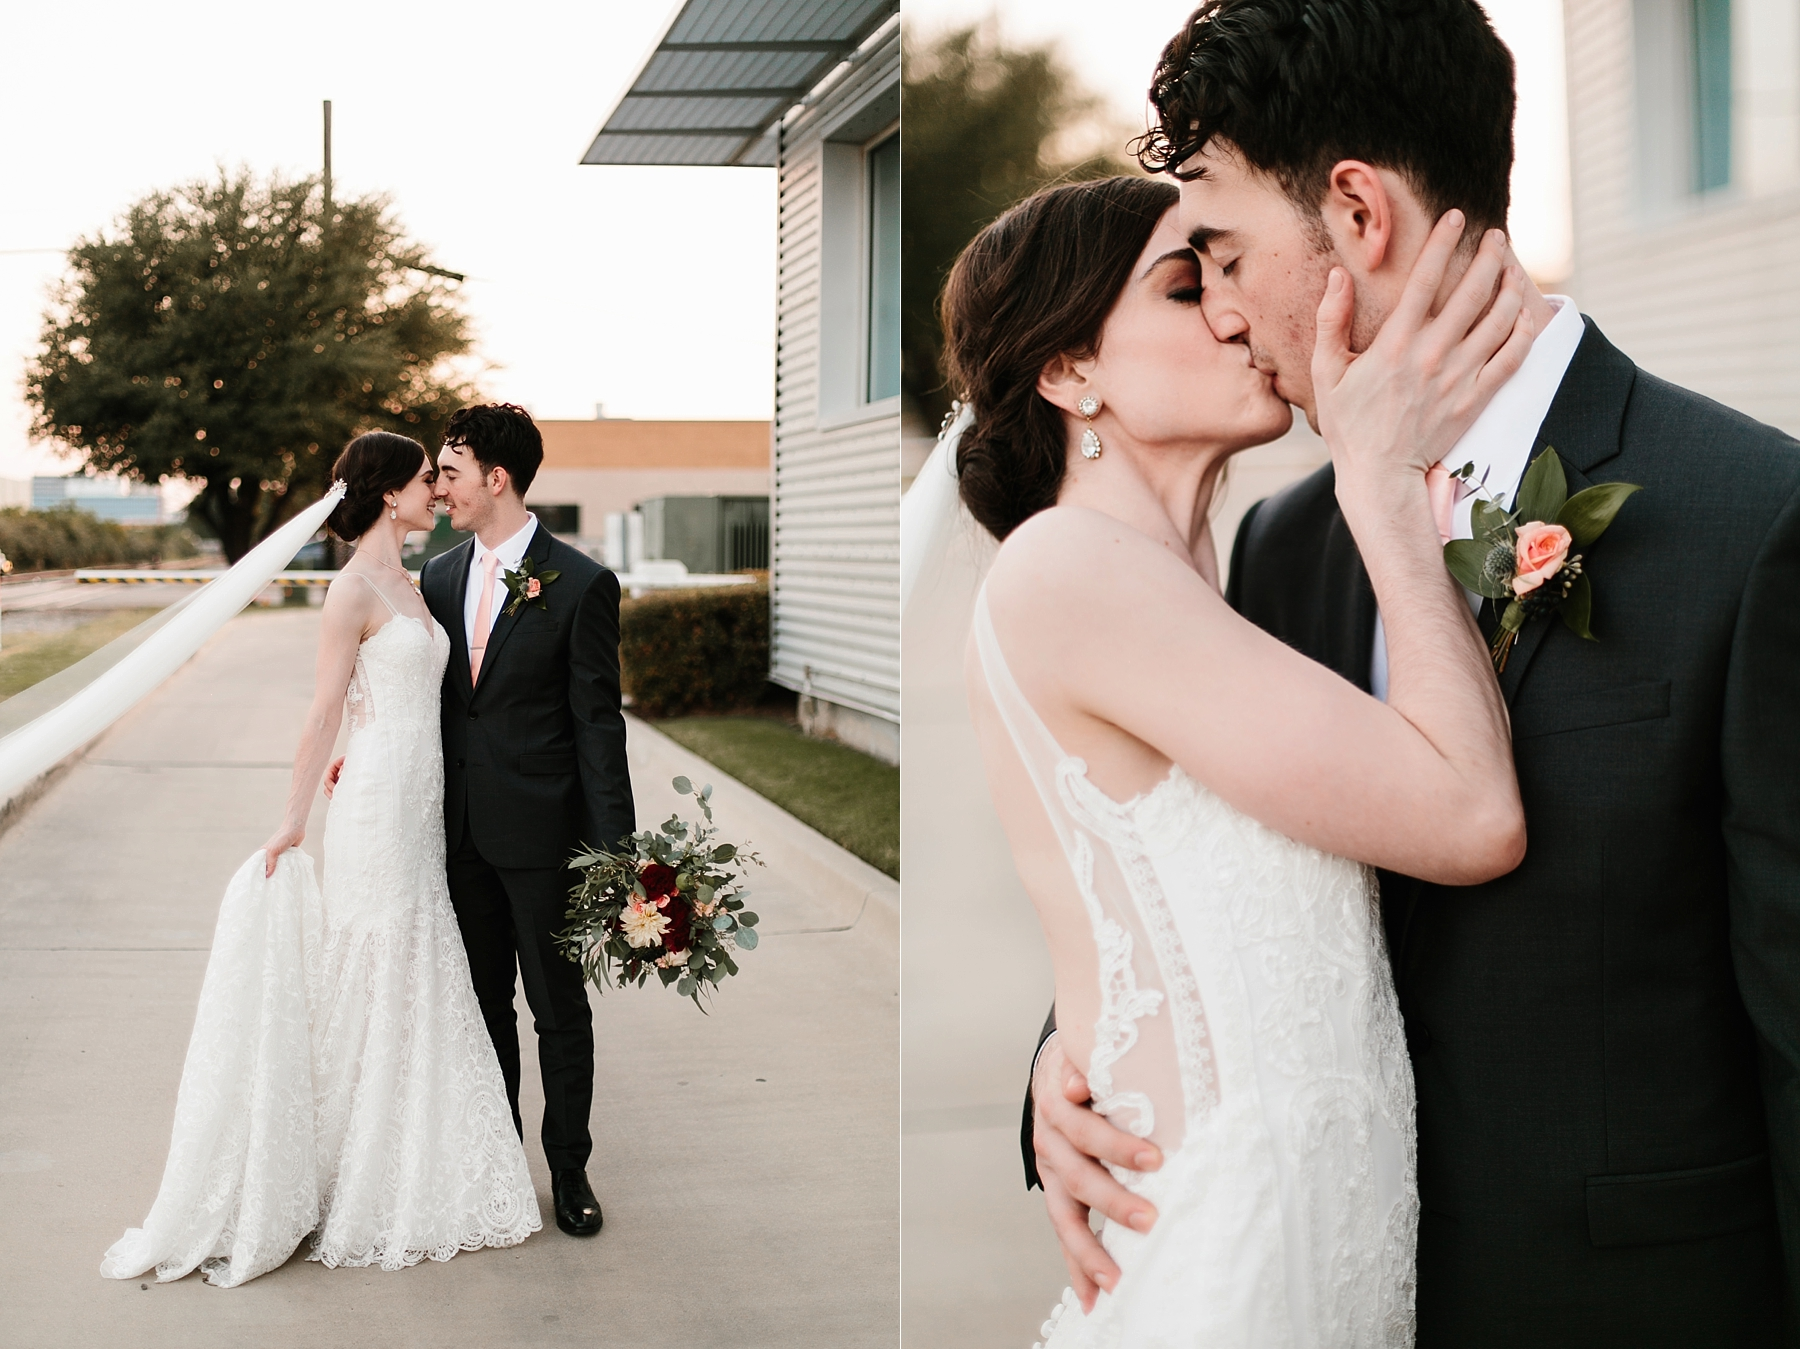 Emily + Caleb _ an elegant, intentional, industrial style wedding with navy + gold accents at 6500 in Dallas, TX by North Texas Wedding Photographer Rachel Meagan Photography _ 119